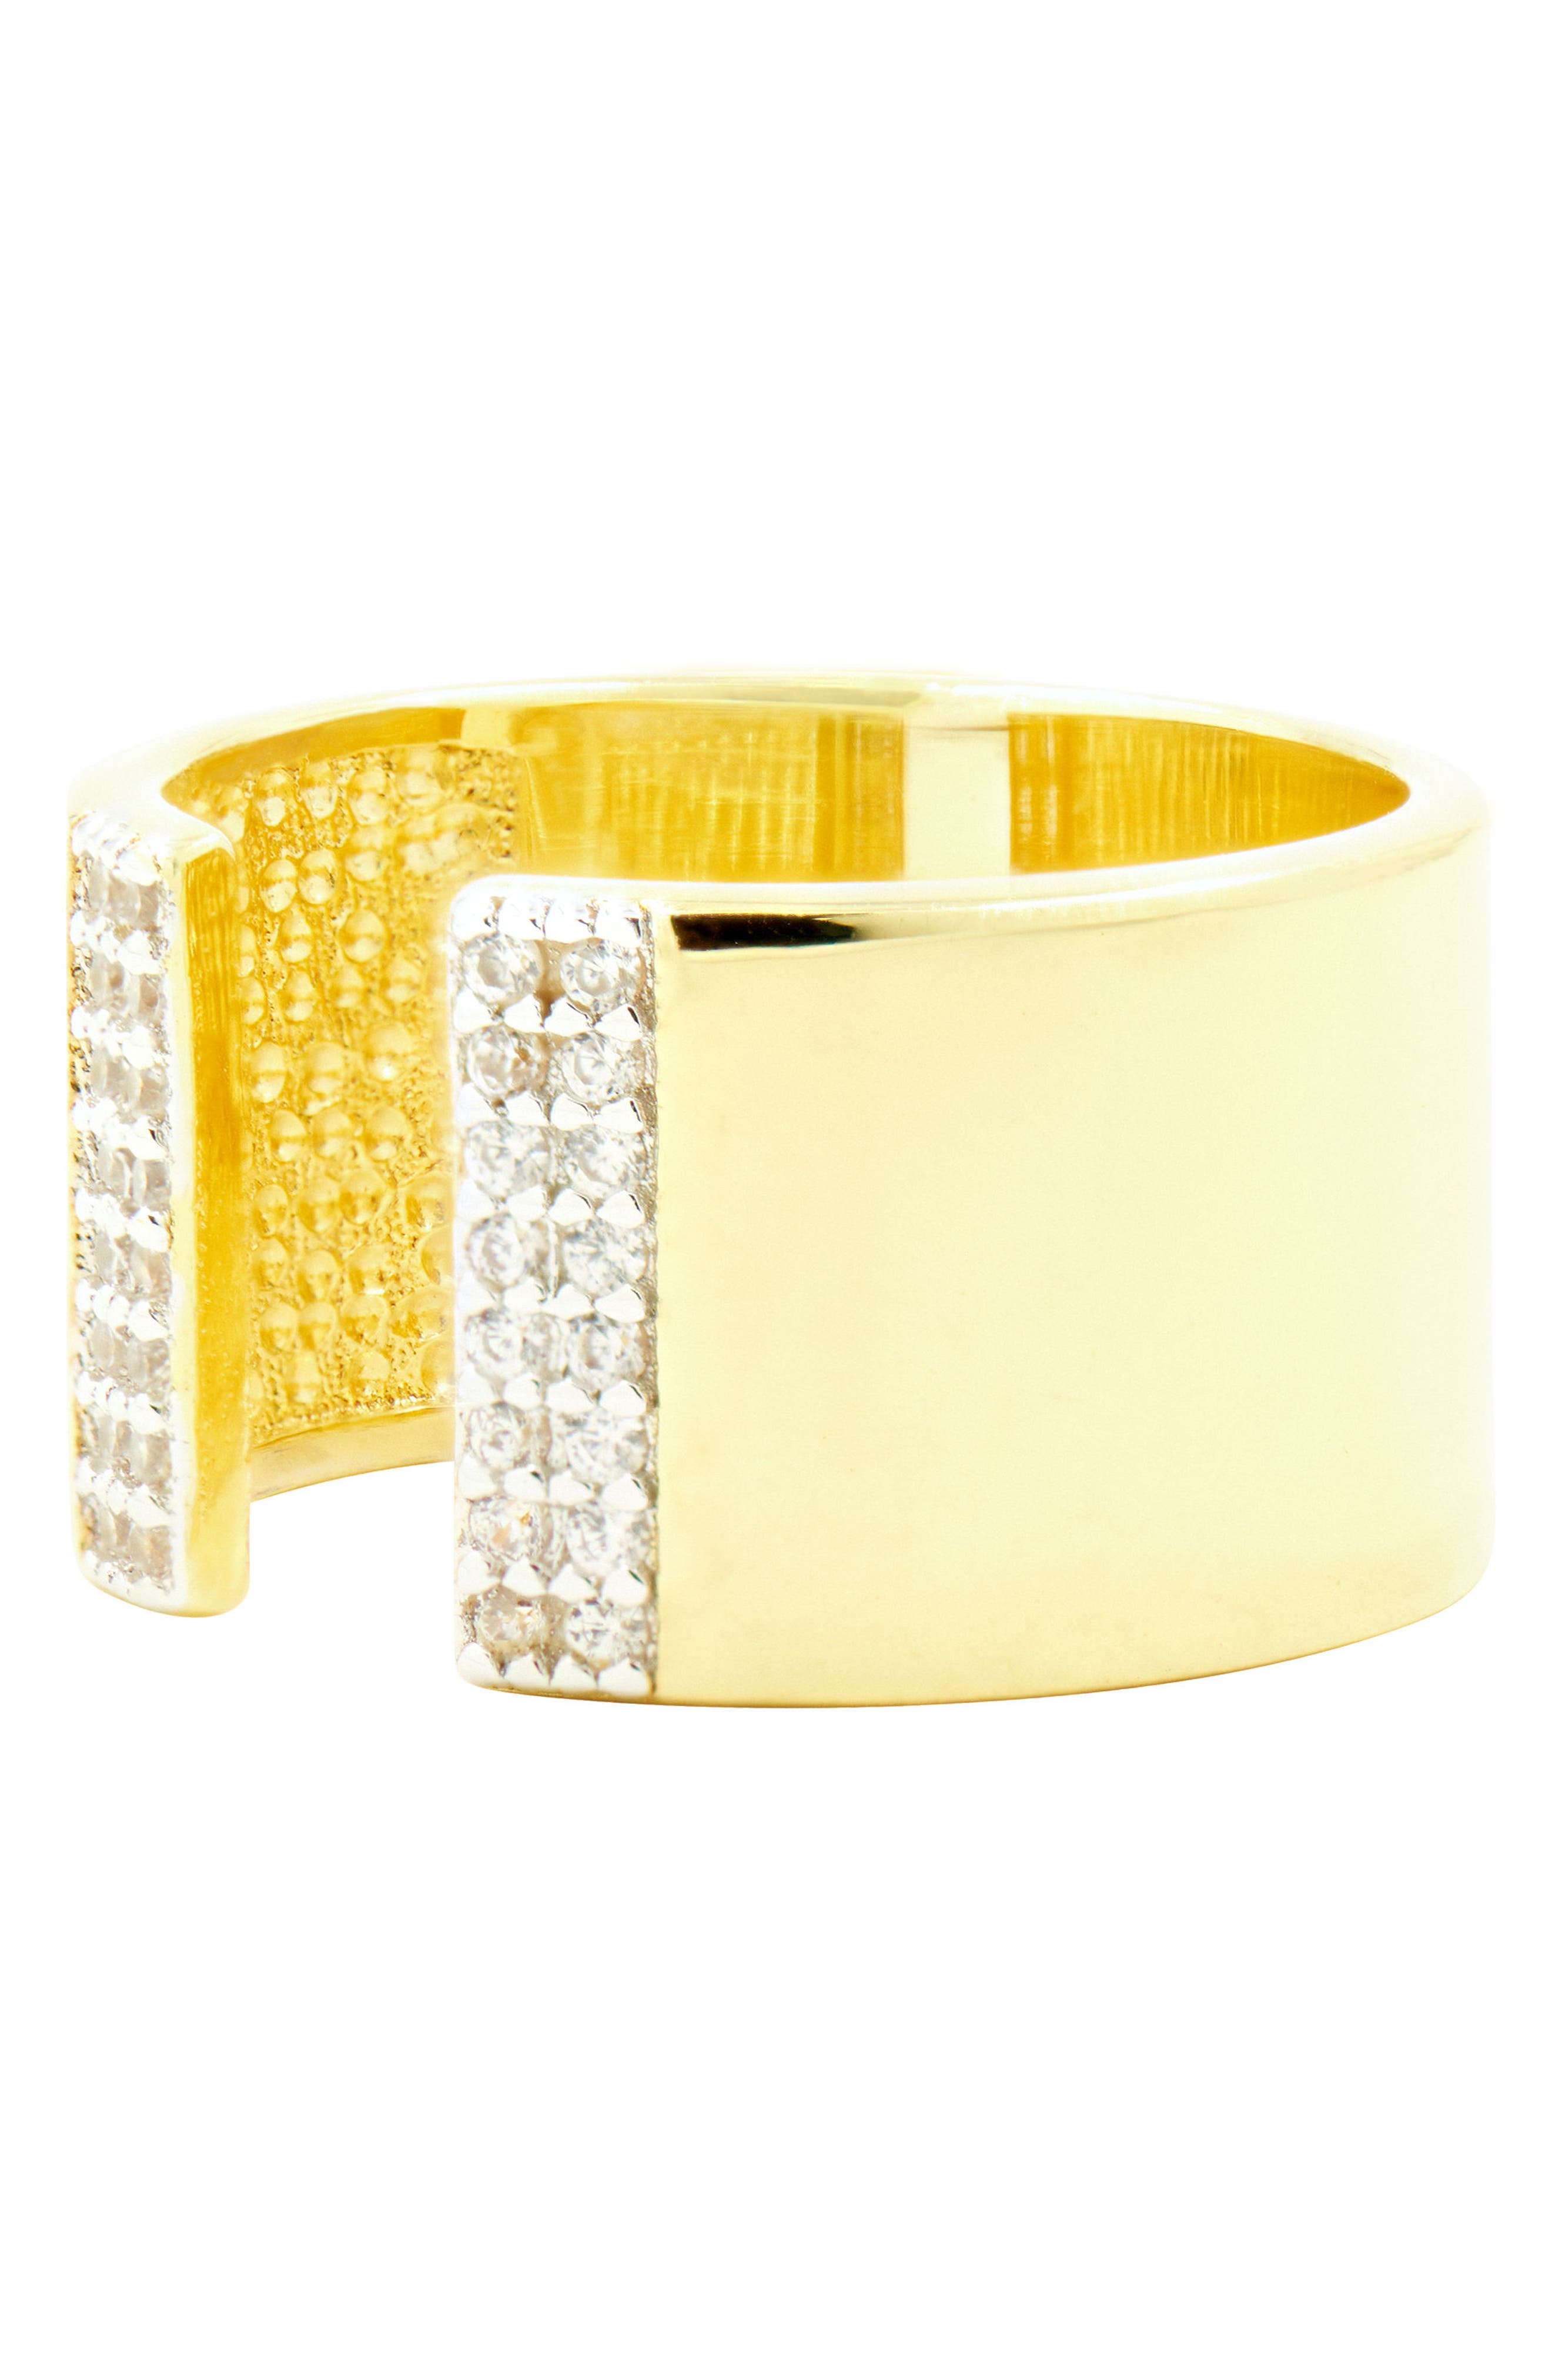 Radiance Cubic Zirconia Ring,                             Alternate thumbnail 3, color,                             Silver/ Gold